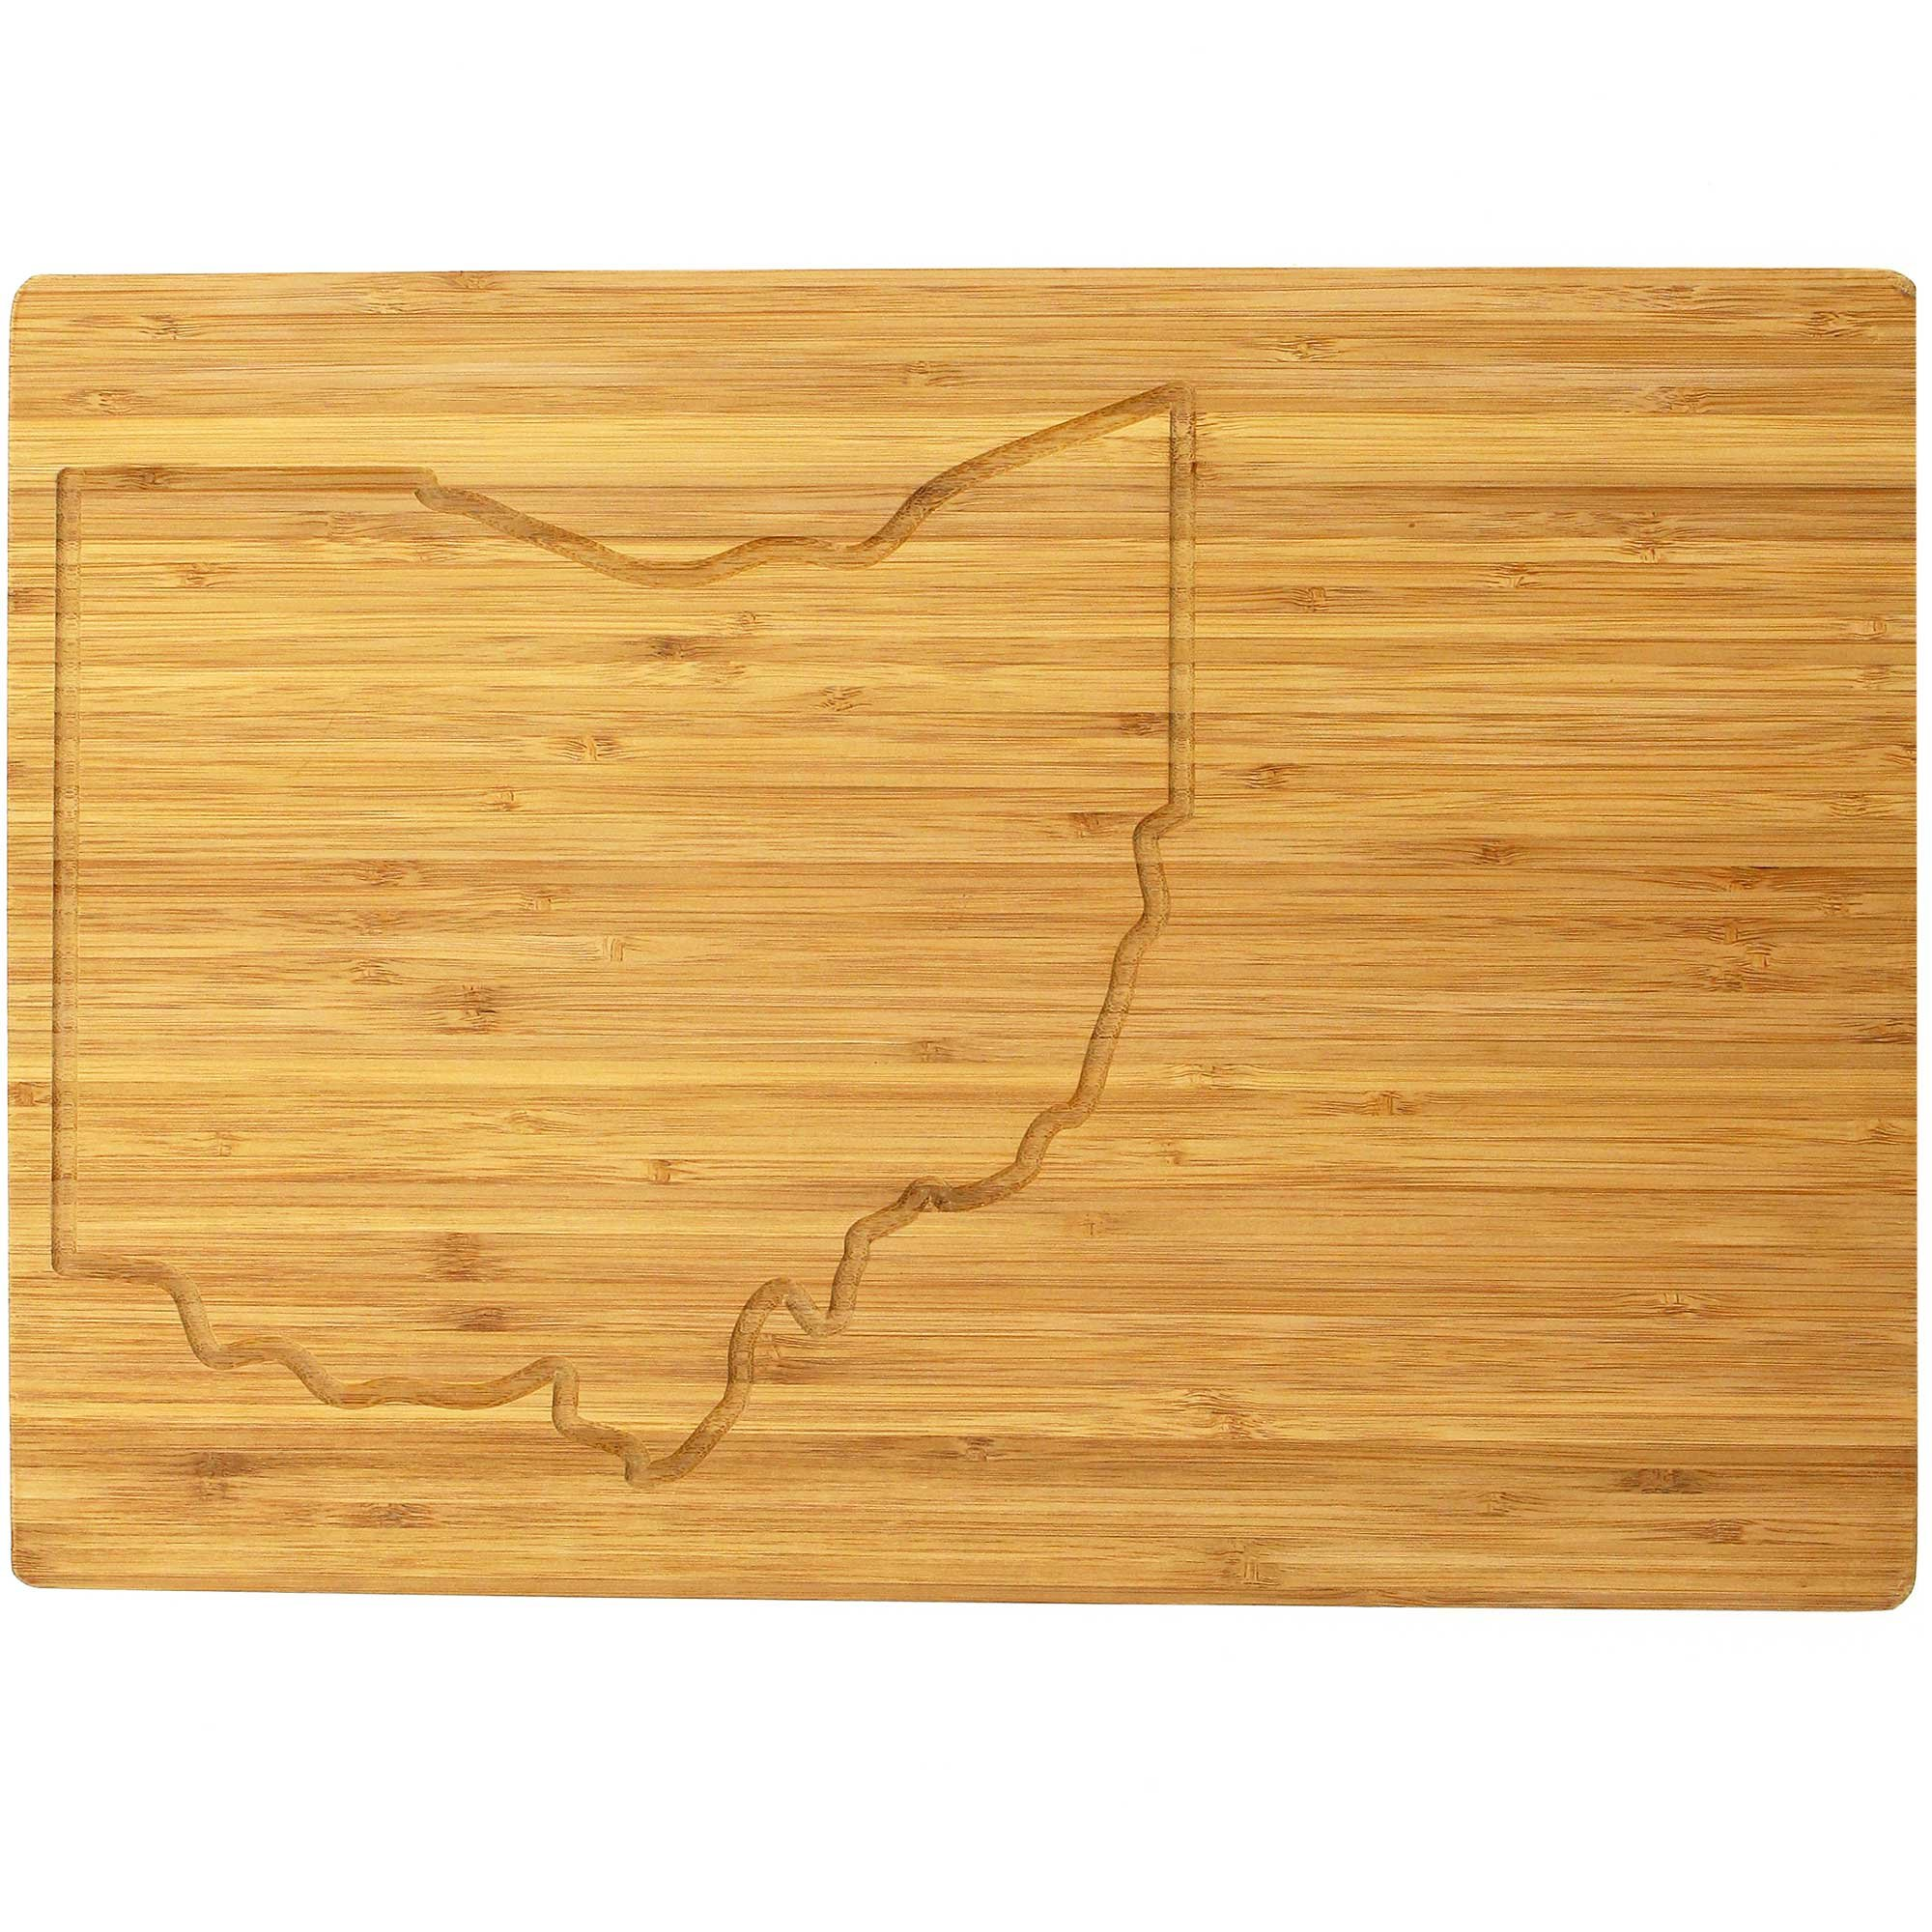 BambooMN - Large Ohio Grooved Image Premium Bamboo Cutting Board - 17'' x 11.5'' x .75'' - 10 Pieces by BambooMN